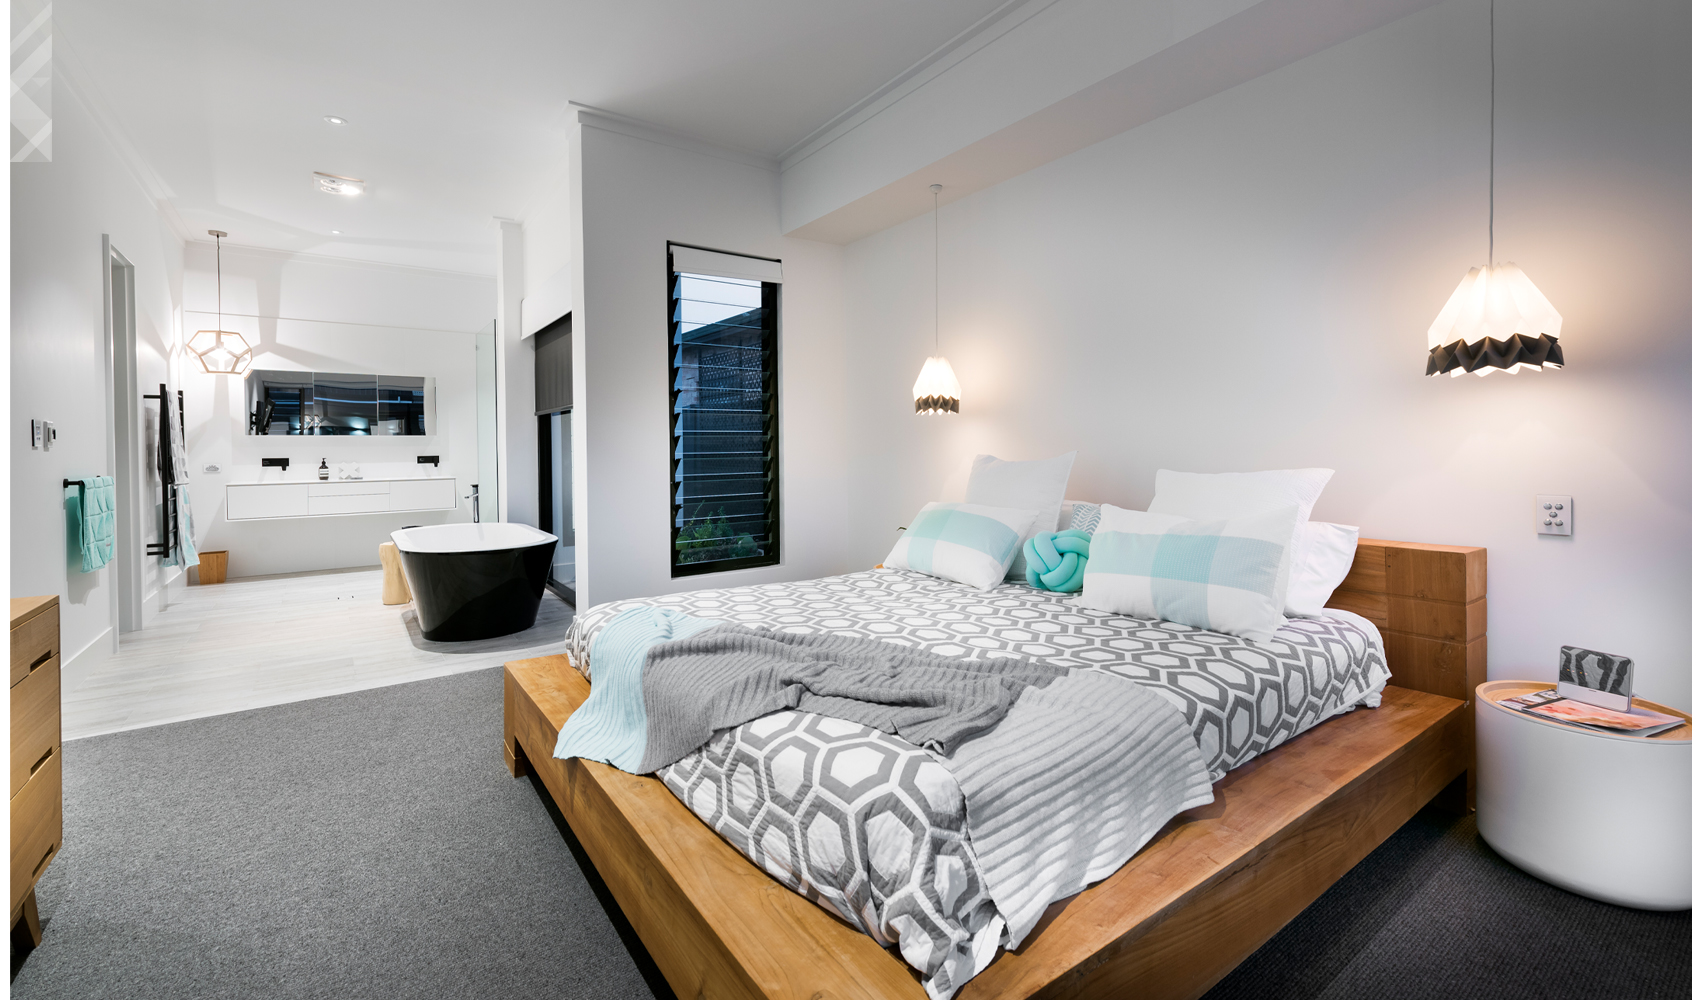 maek-luxury-home-design-inspiration-shenton-park-master-bedroom-6.jpg